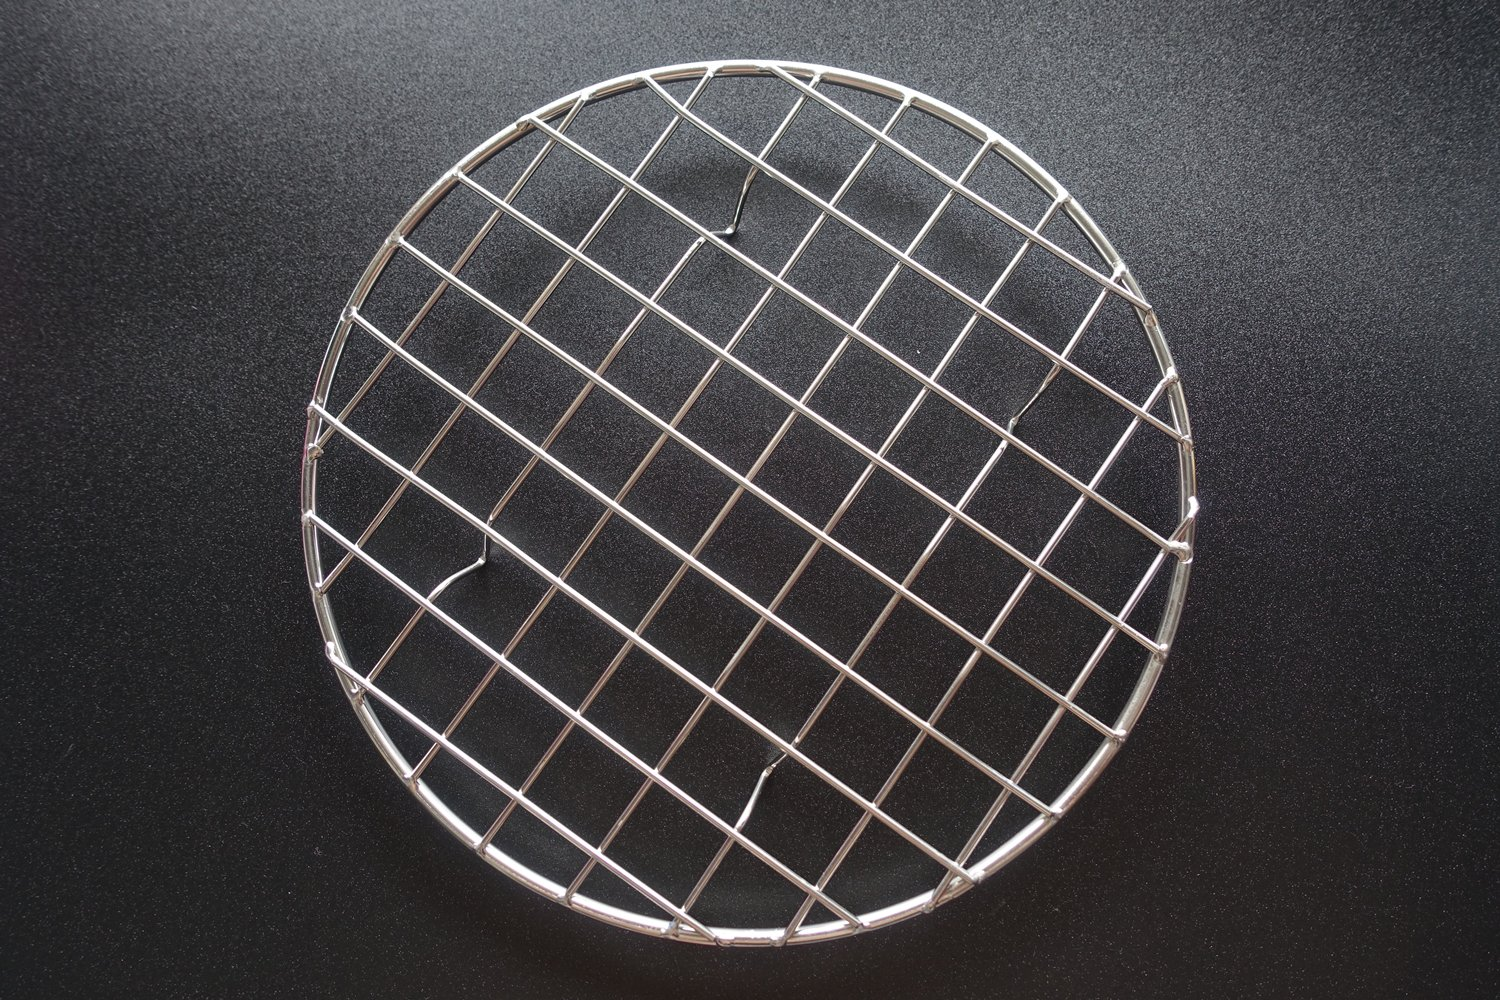 B&S FEEL Multi-Purpose Stainless Steel Round Baking and Cooling Rack, 8.25-Inches